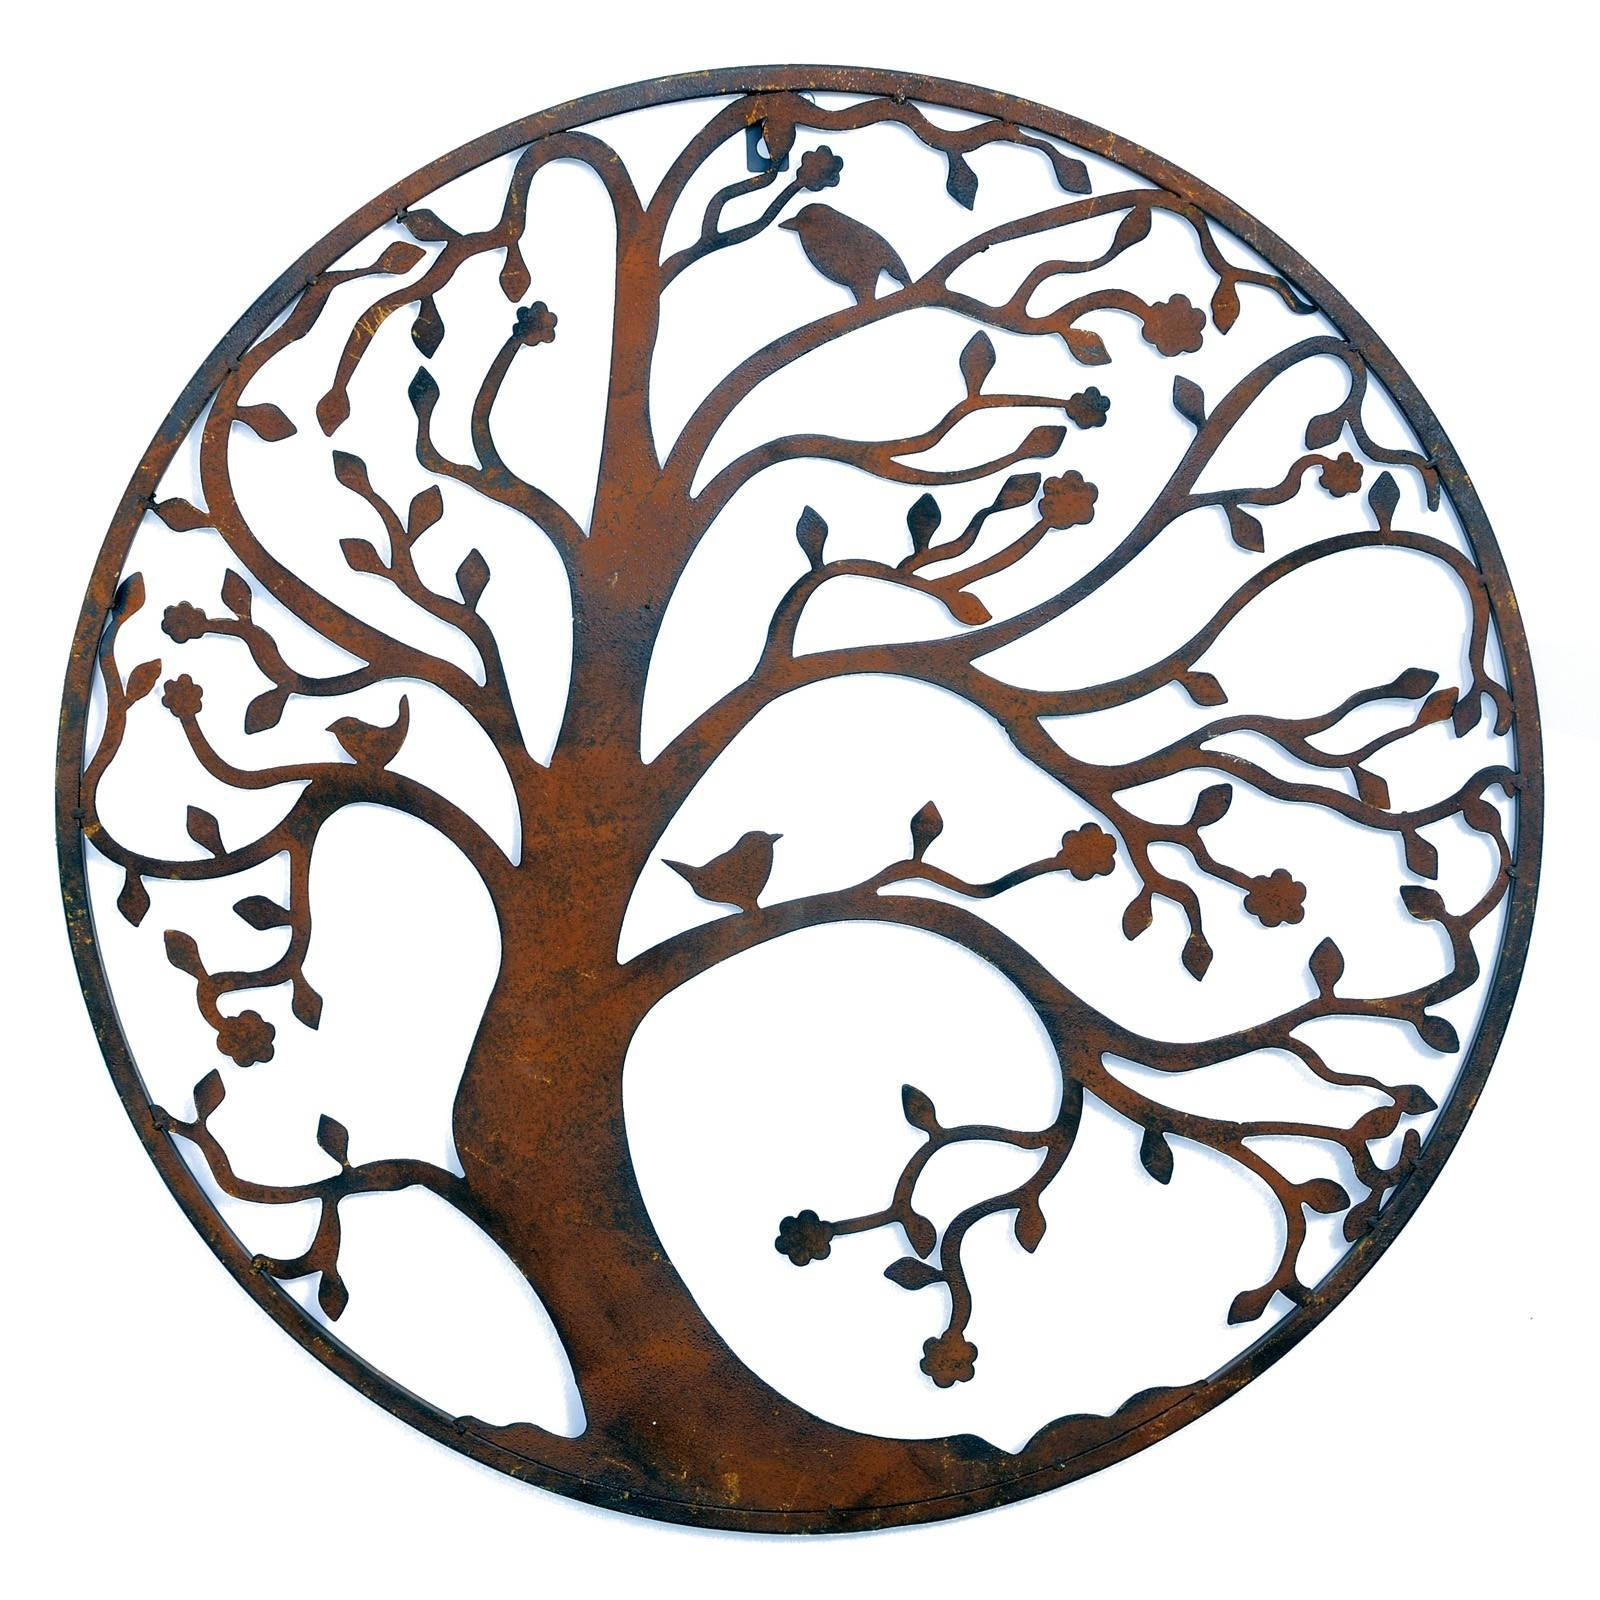 Wall Art Designs: Rusted Classic Design Tree Leaf Branch Birds Regarding Latest Round Metal Wall Art (View 9 of 20)